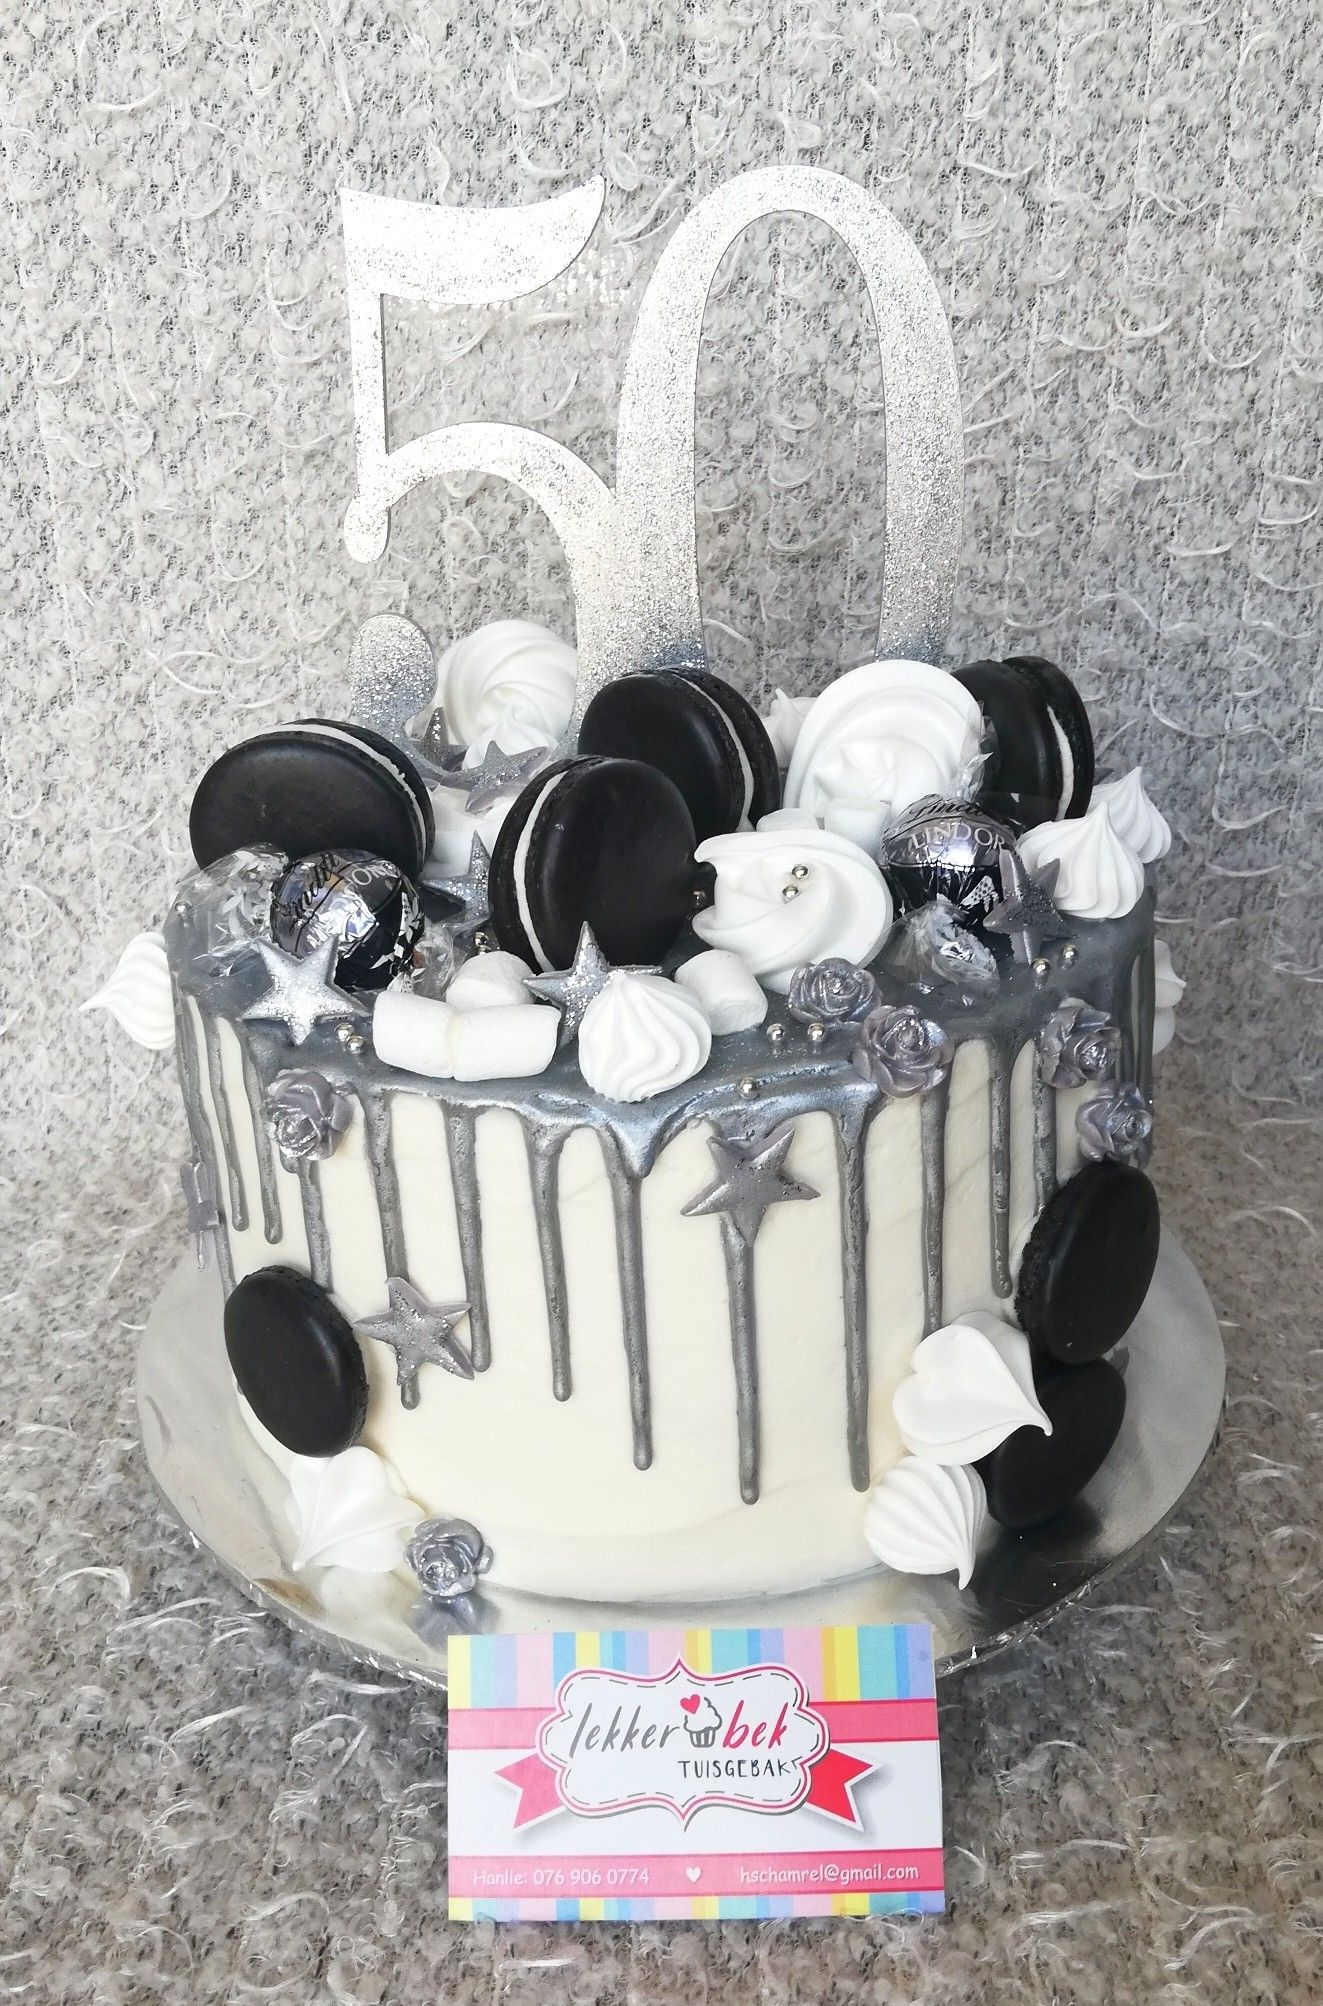 Astonishing 50Th Birthday Cake With White Buttercream Frosting And Silver Funny Birthday Cards Online Alyptdamsfinfo